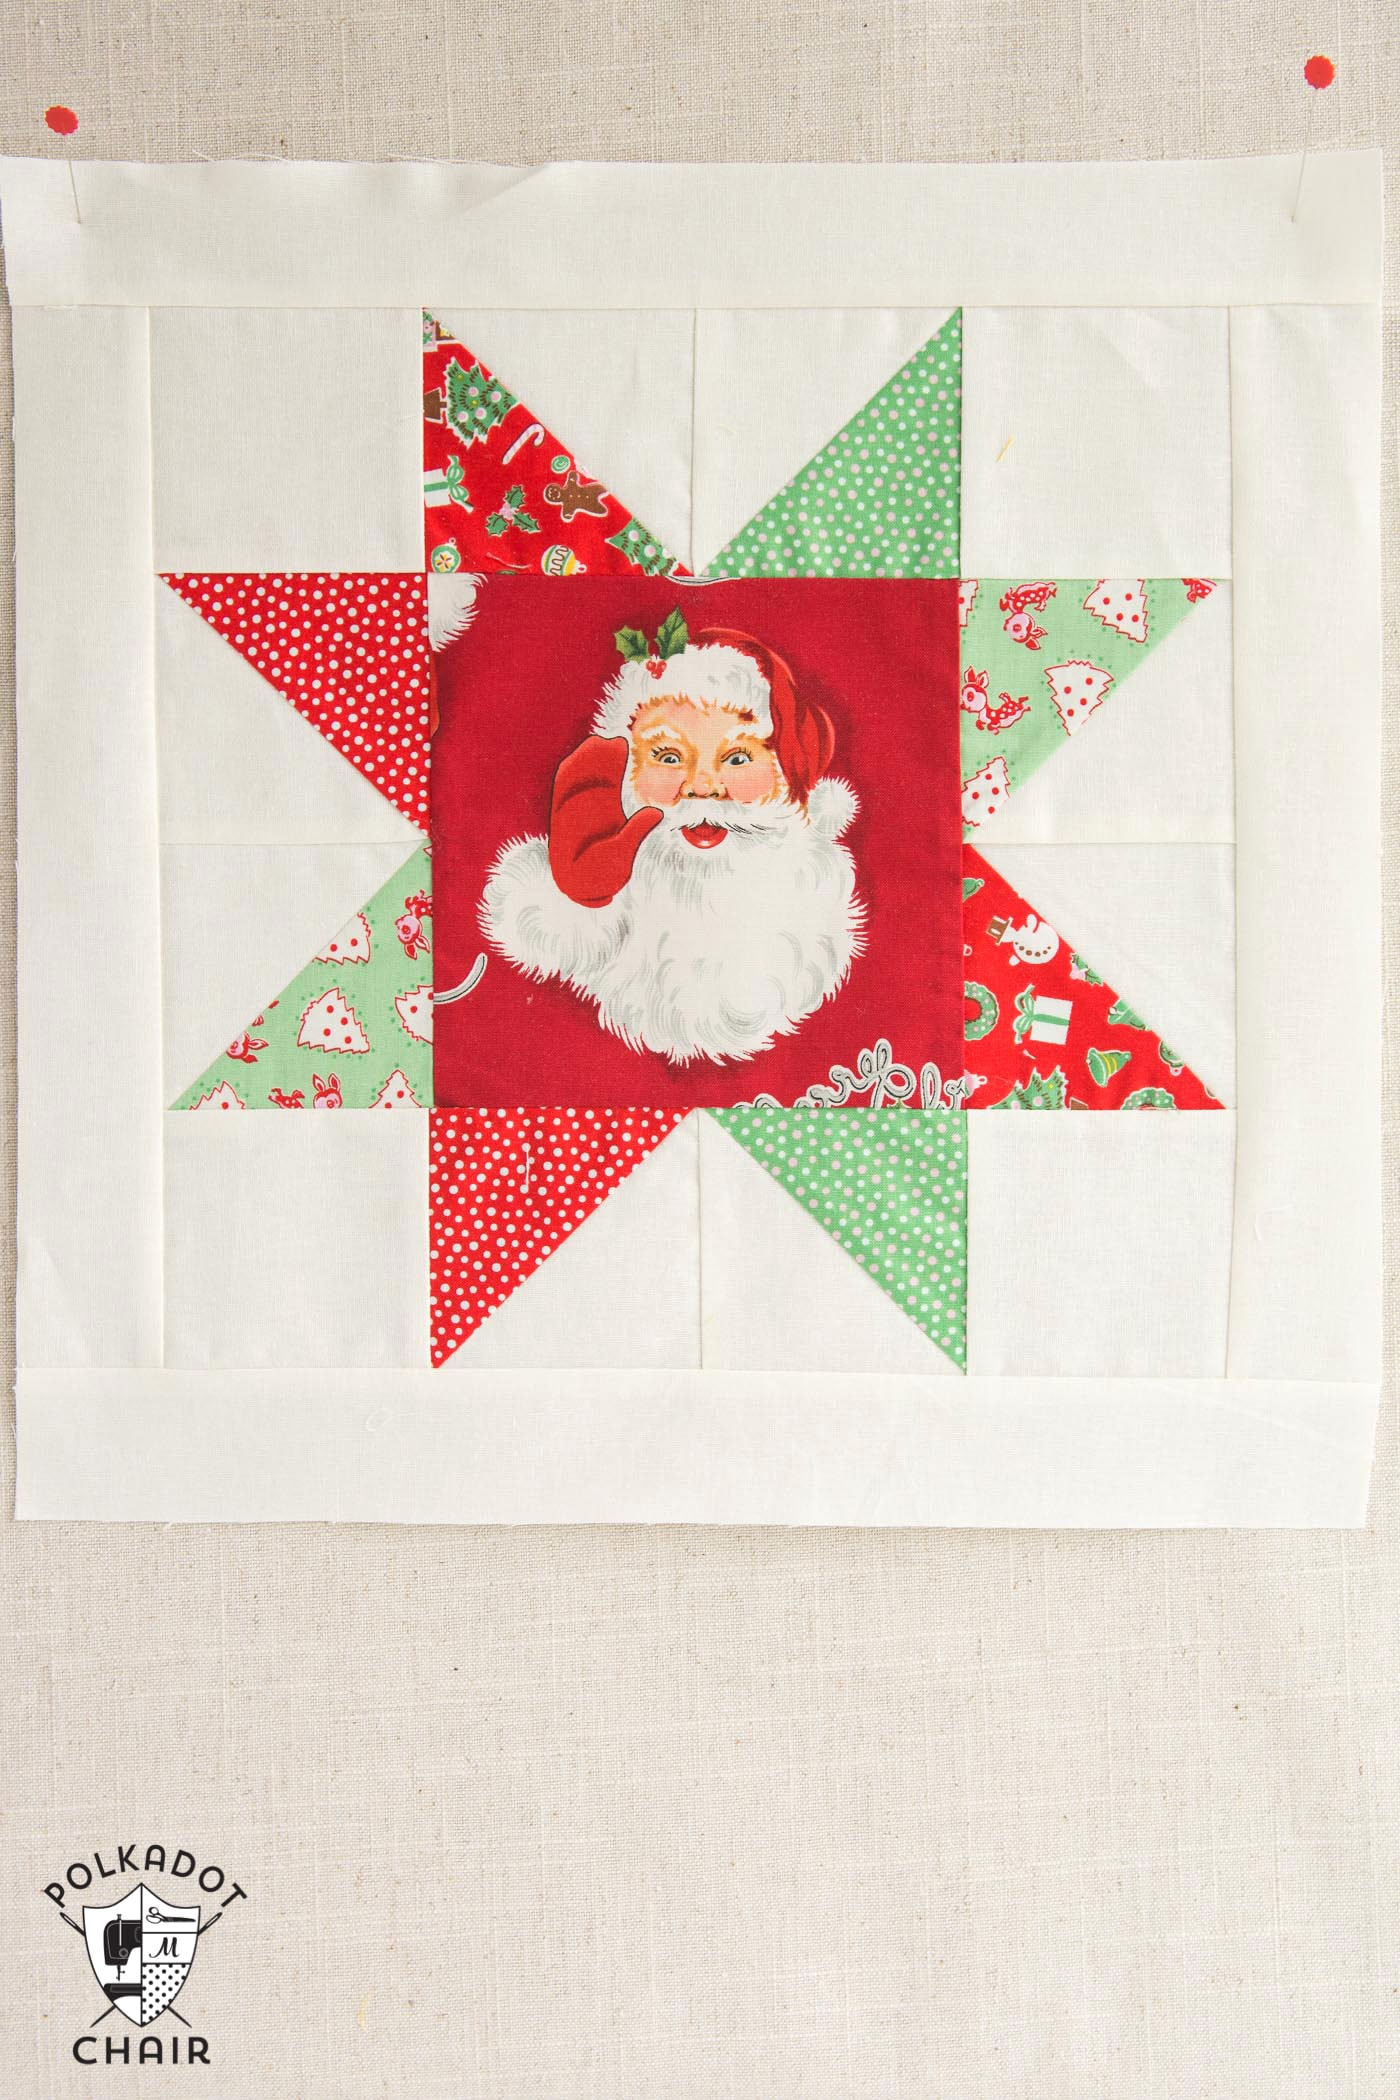 The November Quilt Block of the Month, a variation of a simple sawtooth star quilt block. Join in the block of the month series and make a quilt one month at a time.